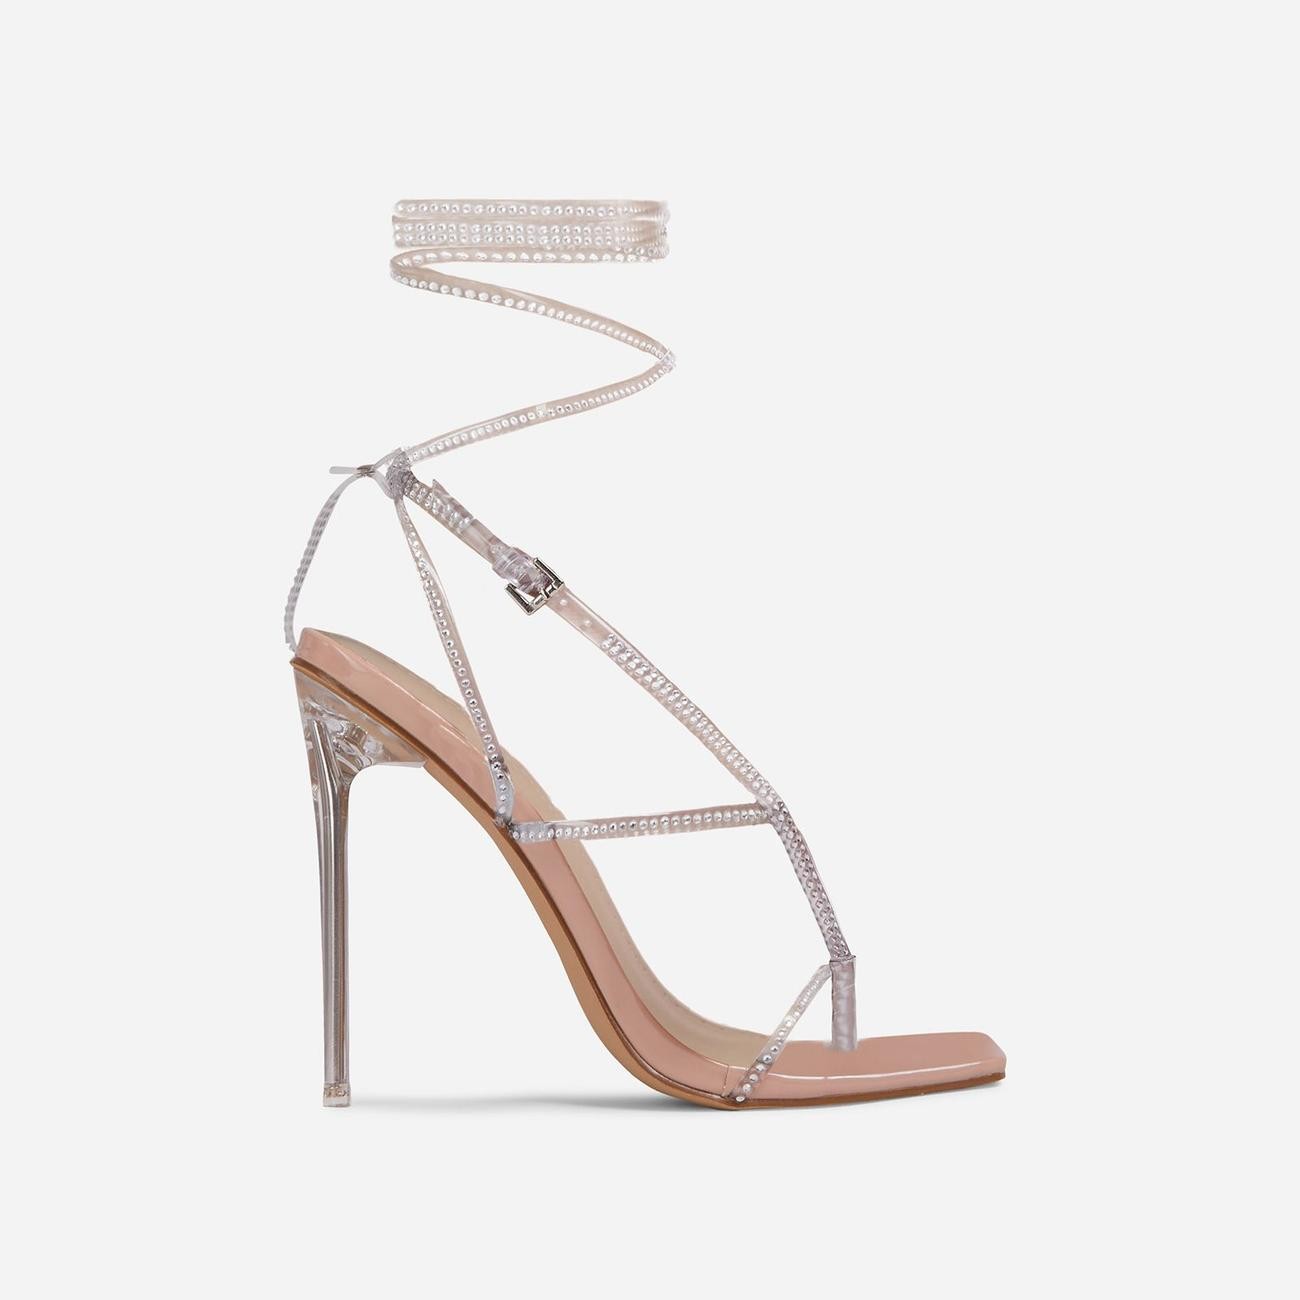 True-Drip Diamante Detail Lace Up Square Toe Clear Perspex Heel In Nude Patent Image 1